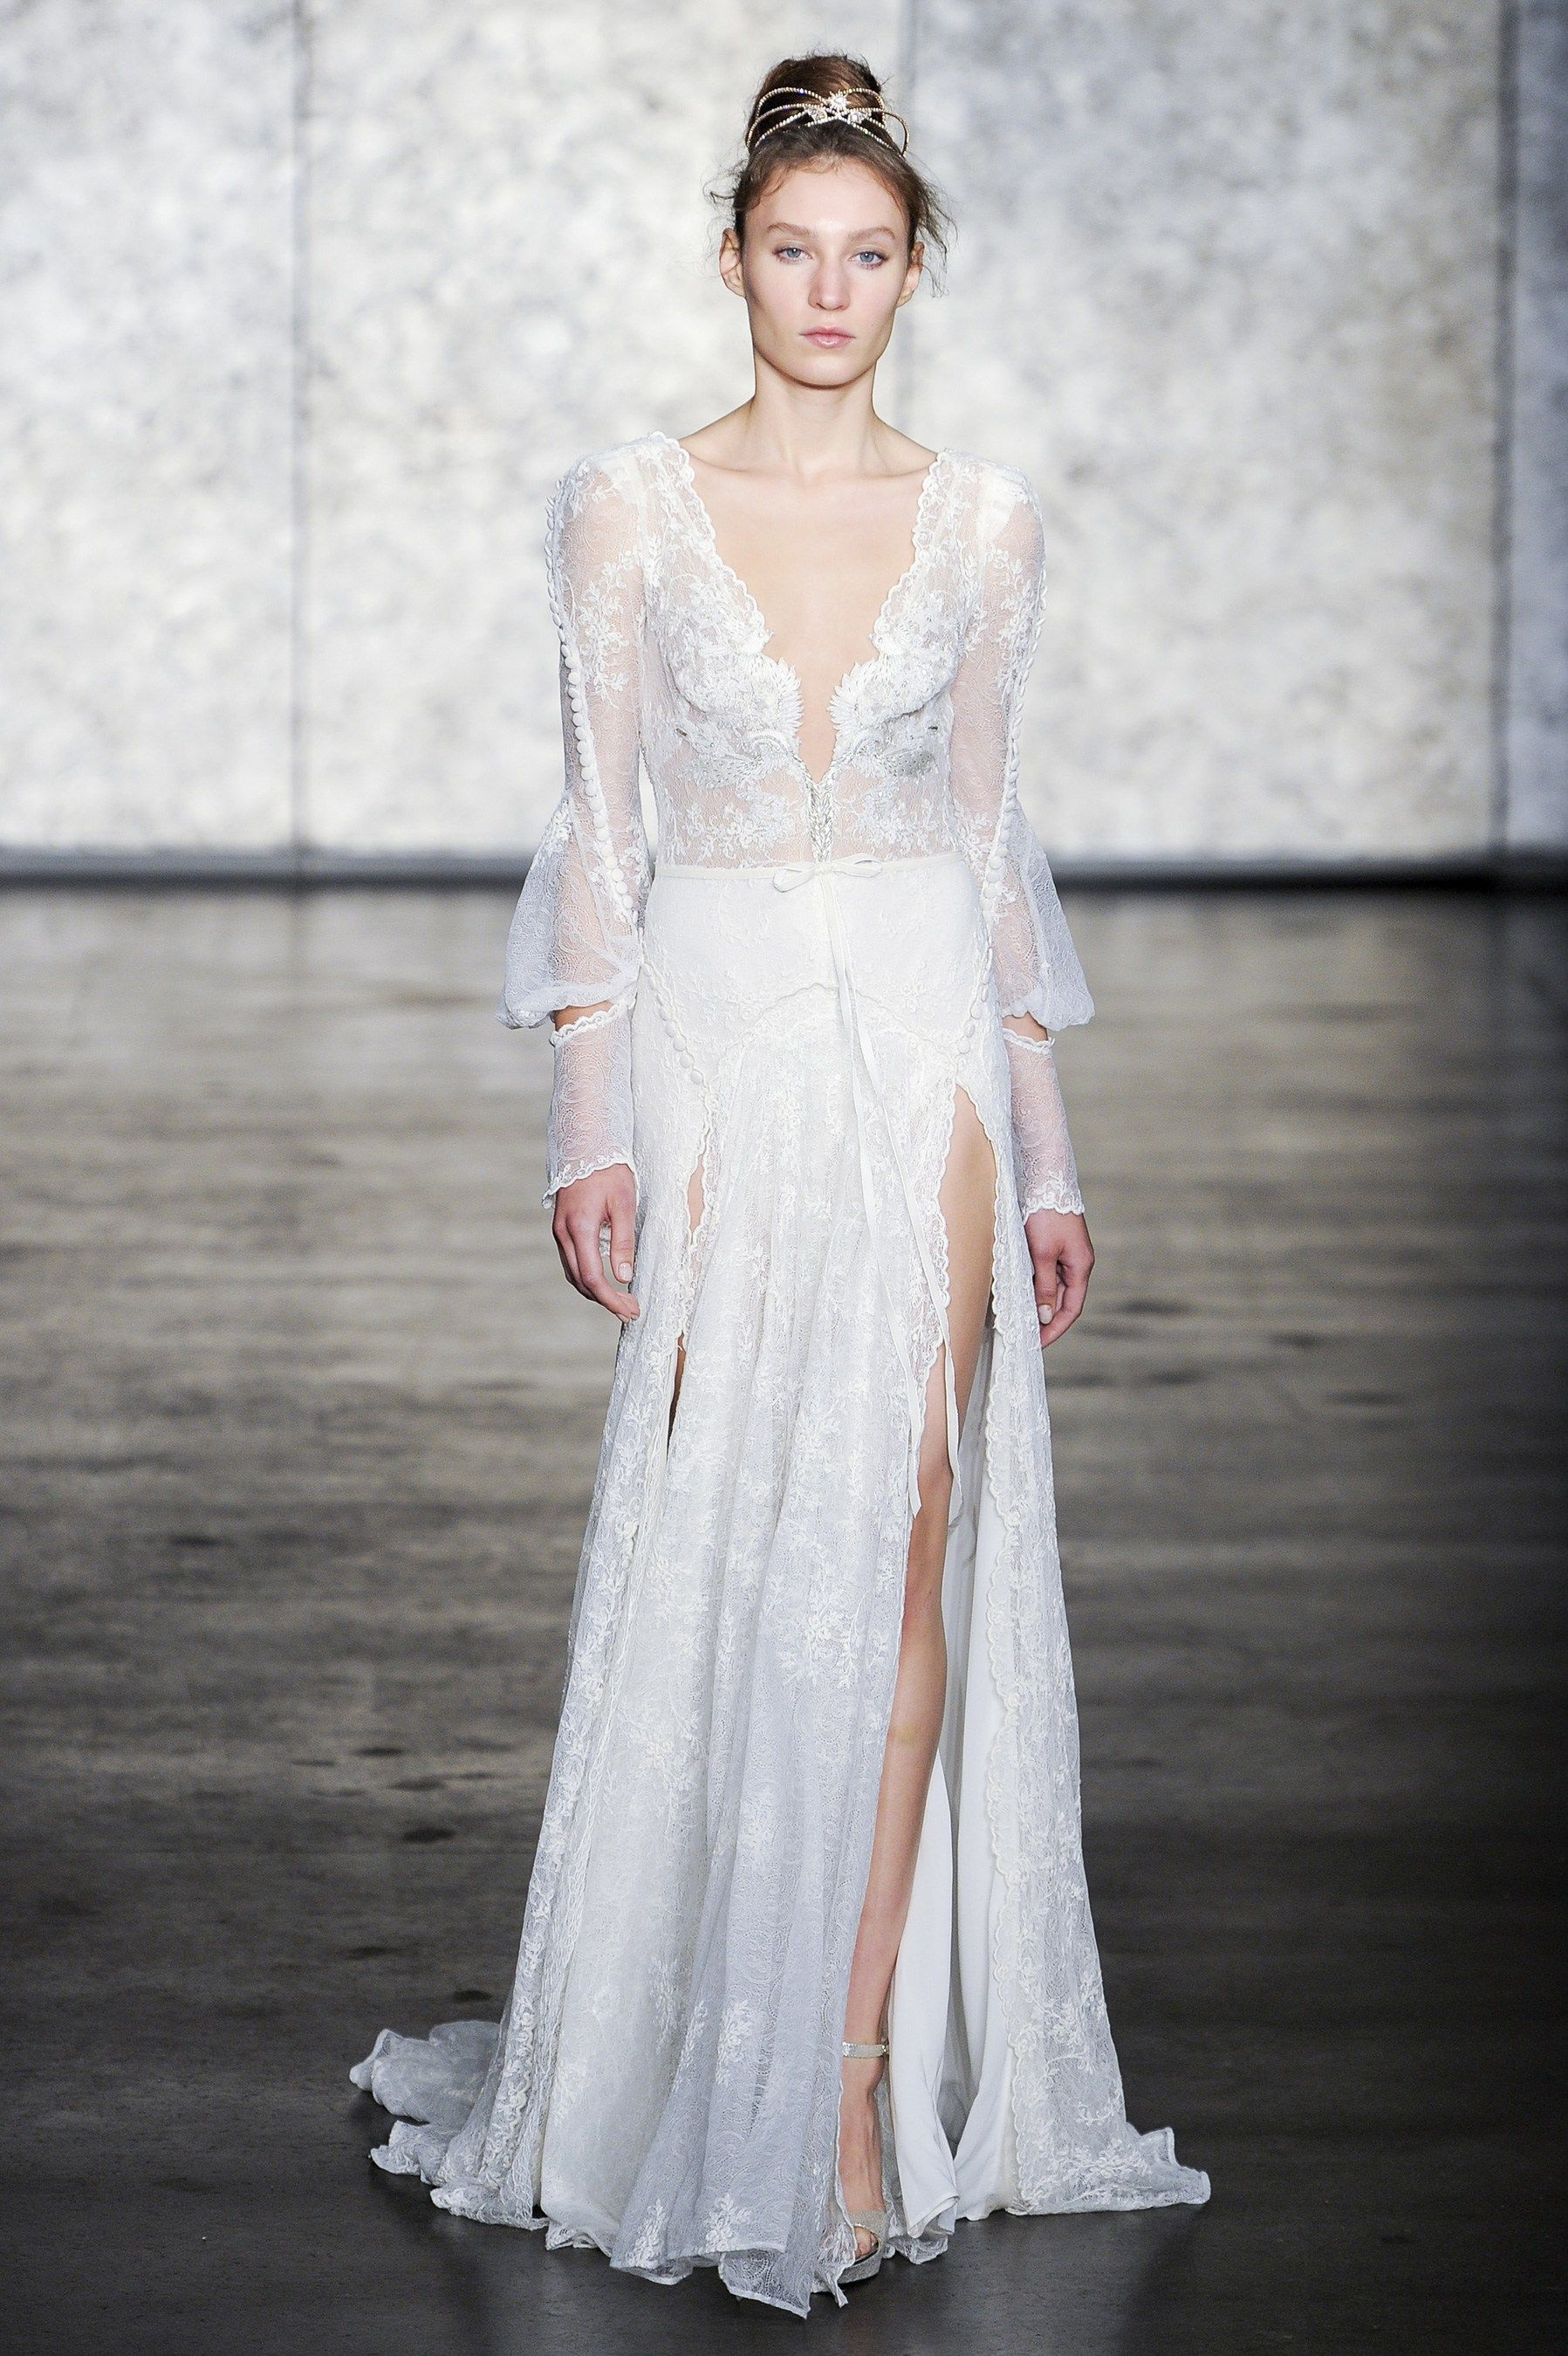 Inbal dror fall bridal fashion show the impression bridal